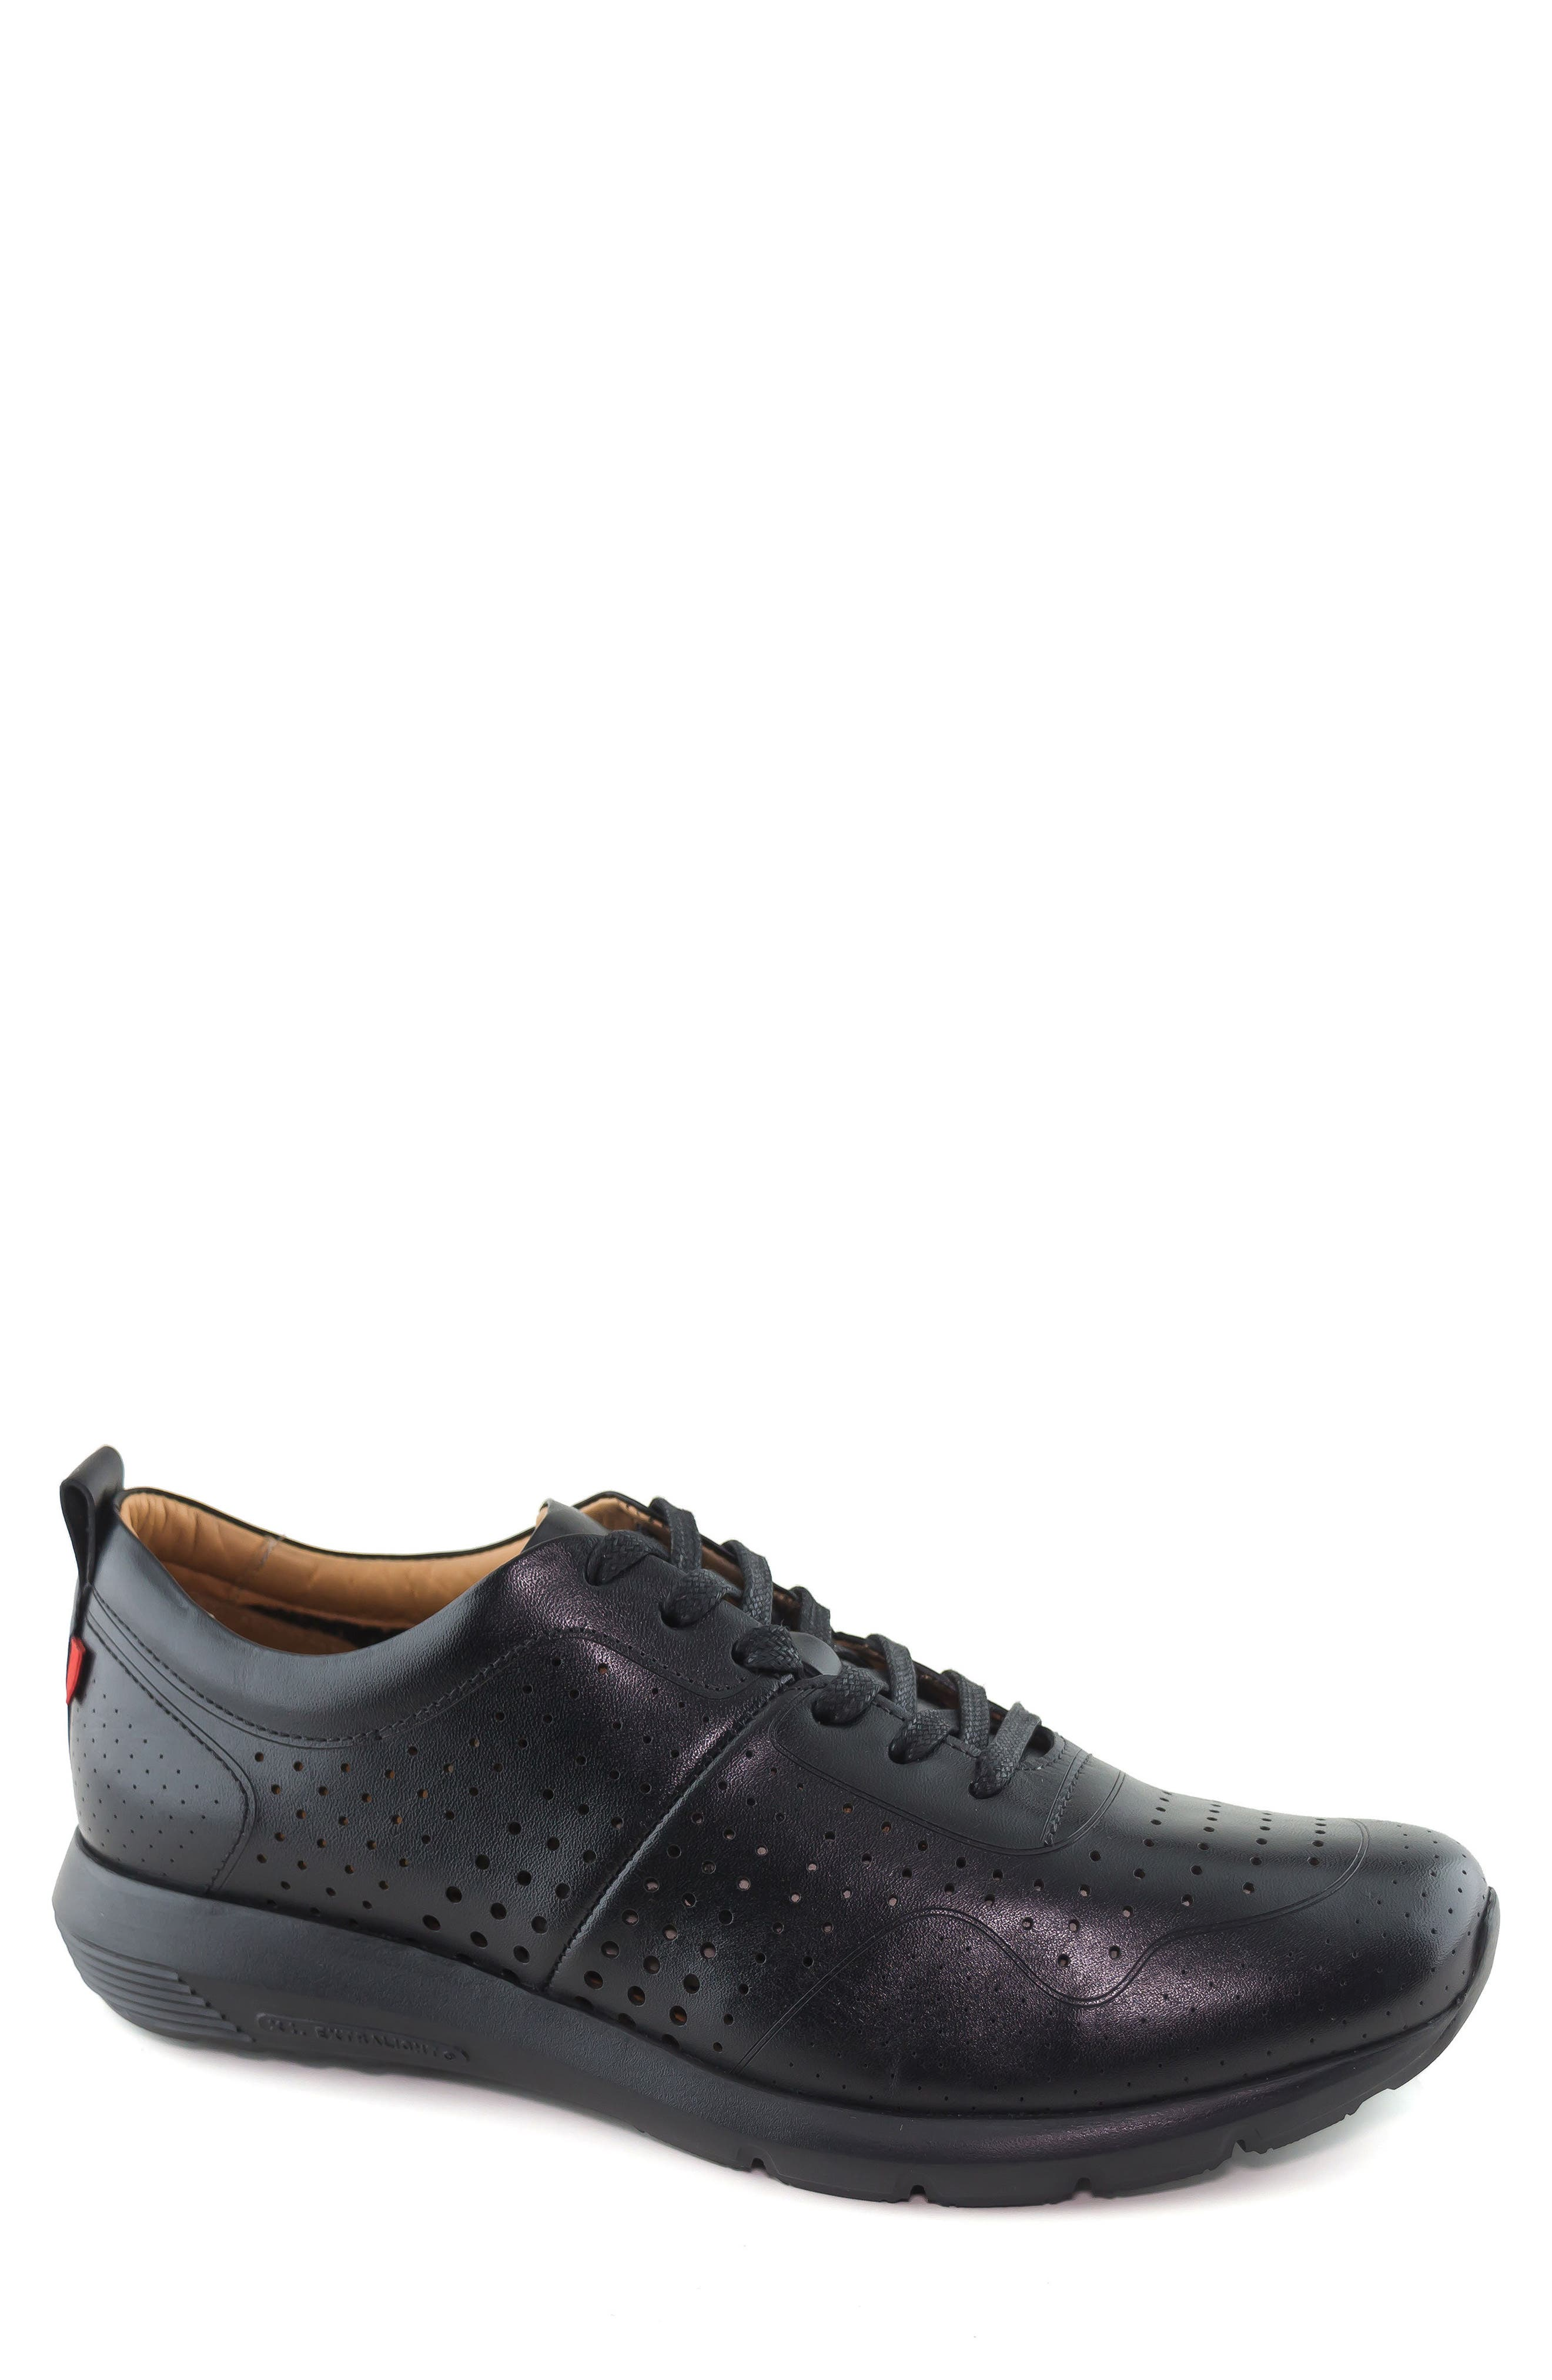 Grand Central Perforated Sneaker,                             Main thumbnail 1, color,                             BLACK